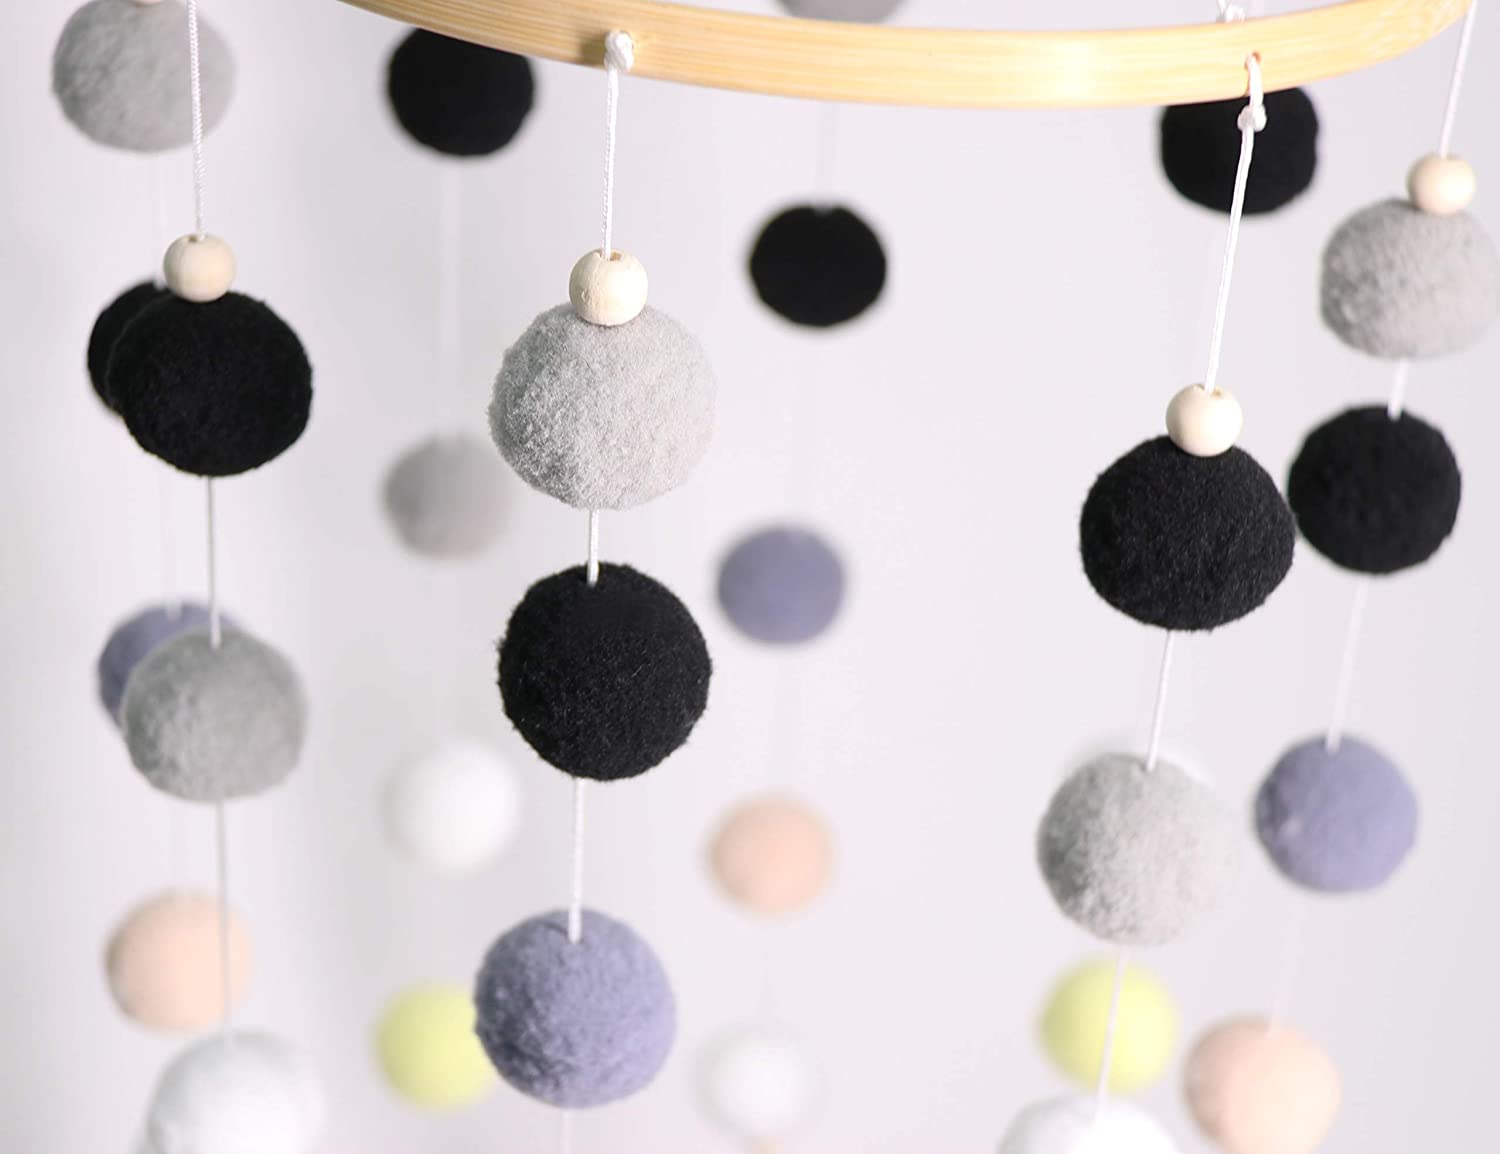 100/% Wooden Beads for Your Boy or Girl Babies Bed Room Dark Gray-11.819.2In Baby Crib Mobile Designer Colors to Match Your Nursery and Delight Your Child